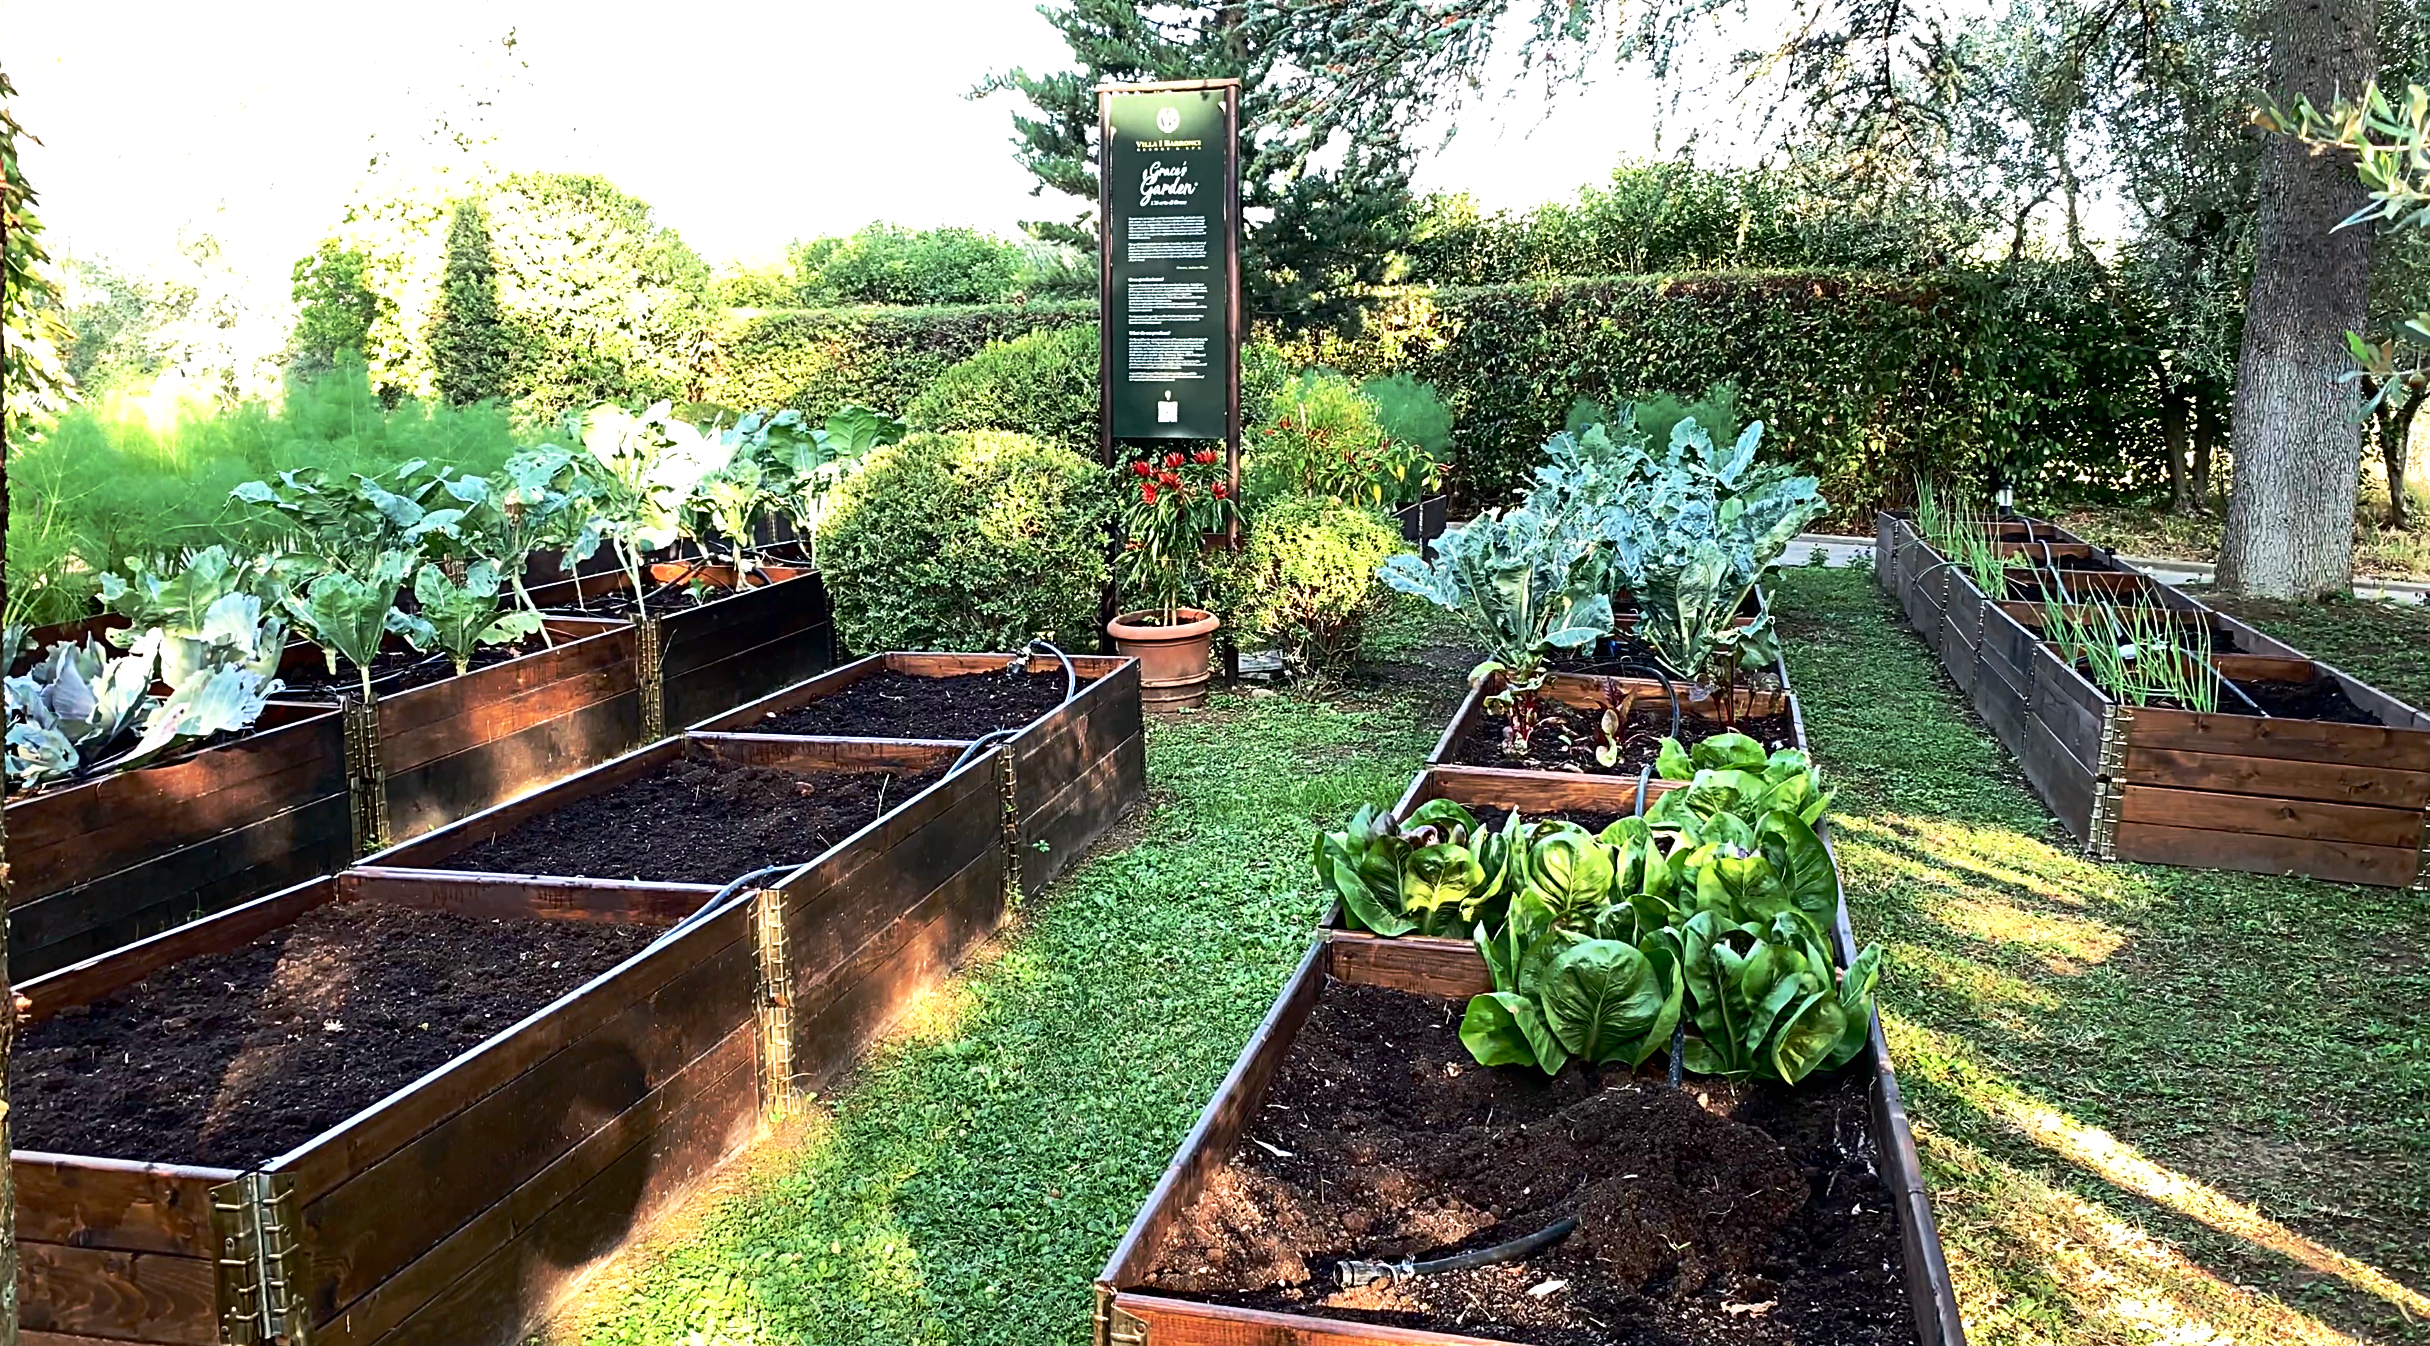 The hotel's kitchen garden. We savoured some produce from here both nights we ate in the restaurant.